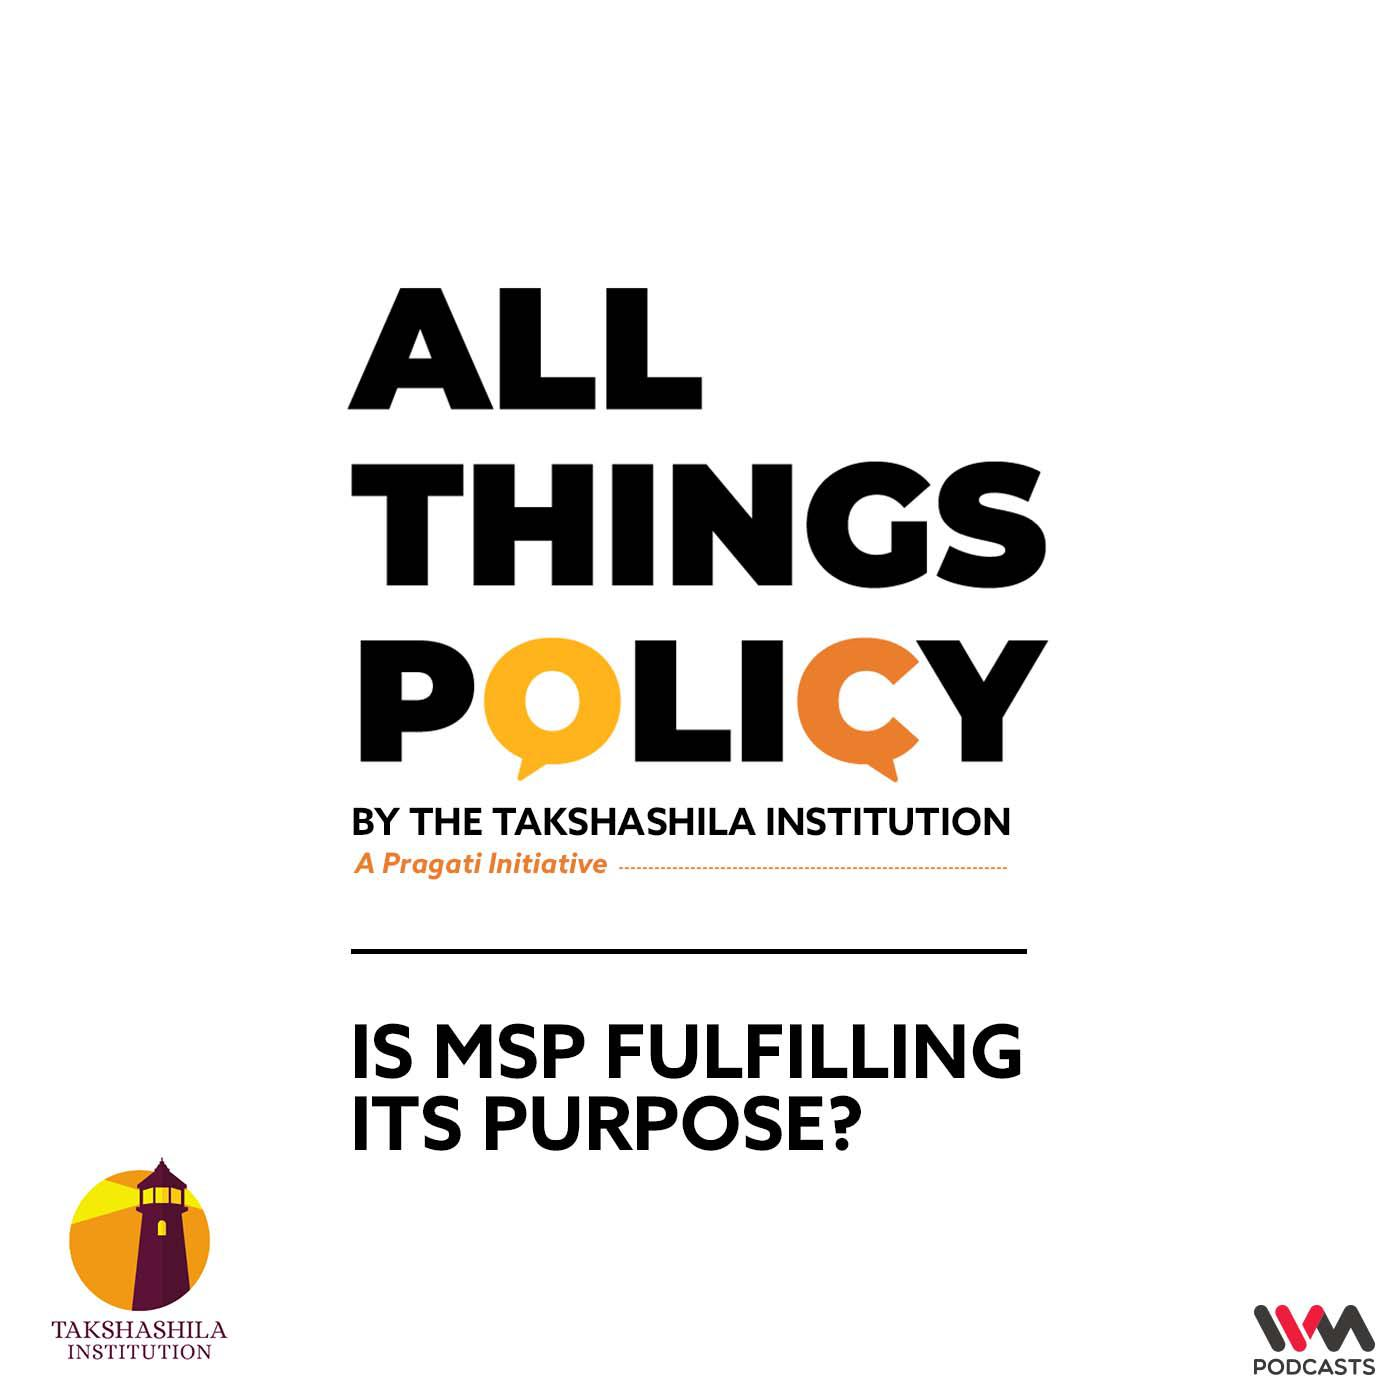 Is MSP Fulfilling its Purpose?